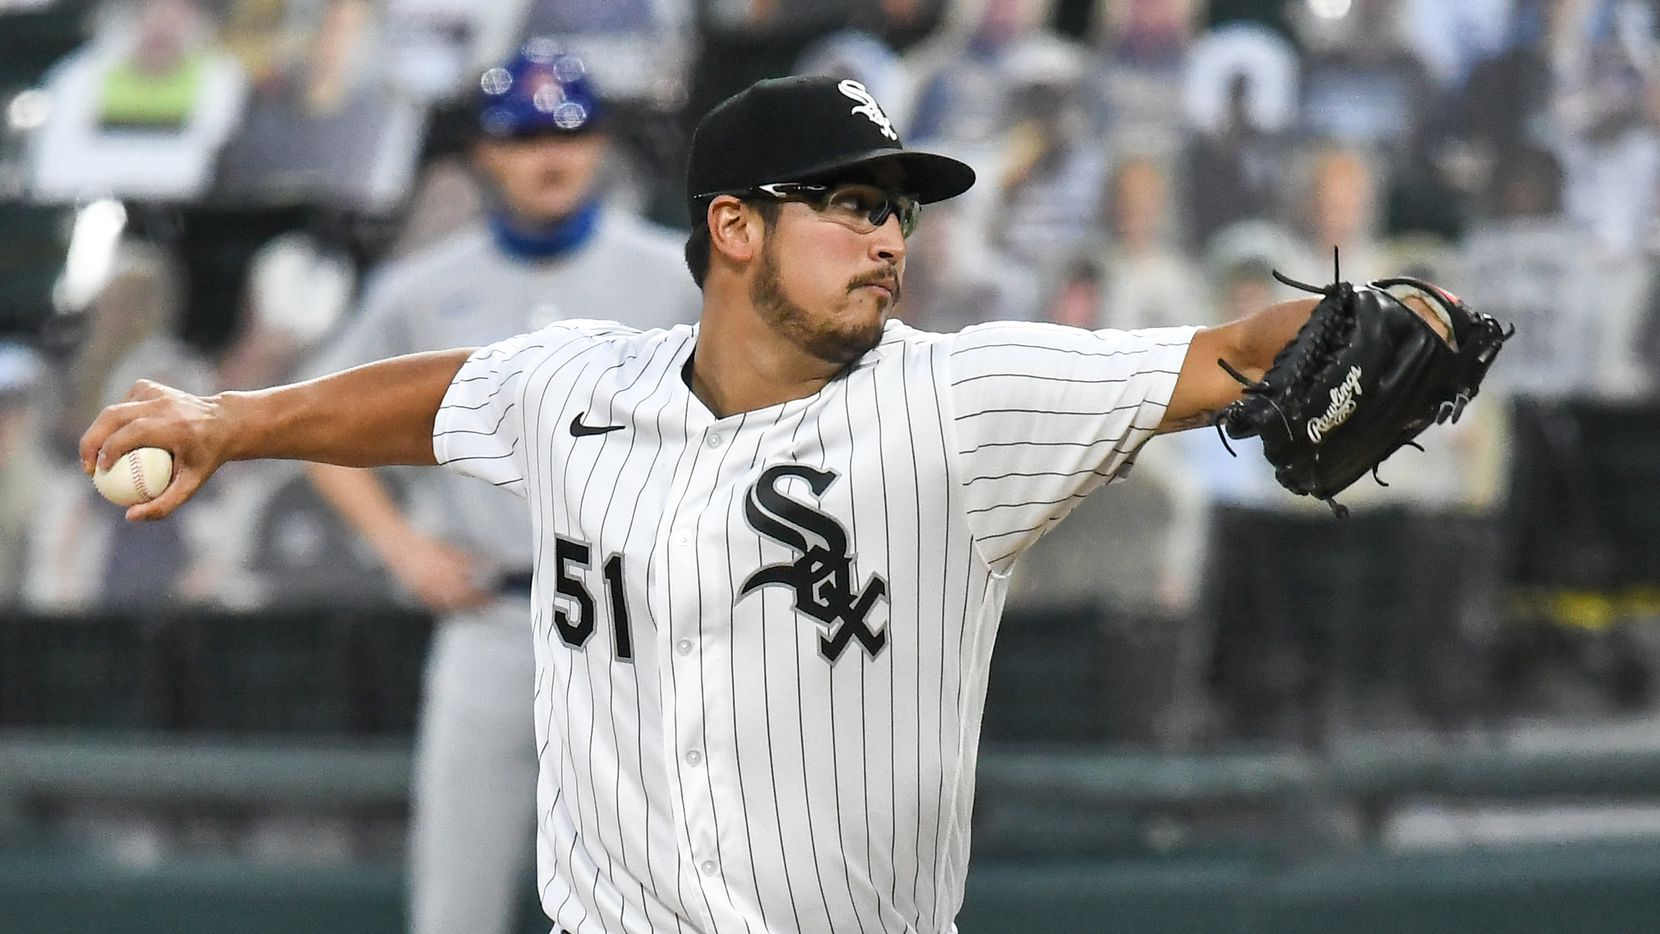 CHICAGO, IL - SEPTEMBER 26: Chicago White Sox pitcher Dane Dunning (51) delivers a pitch during a Major League Baseball game between the Chicago White Sox and Chicago Cubs on September 26, 2020, at Guaranteed Rate Field, Chicago, IL.